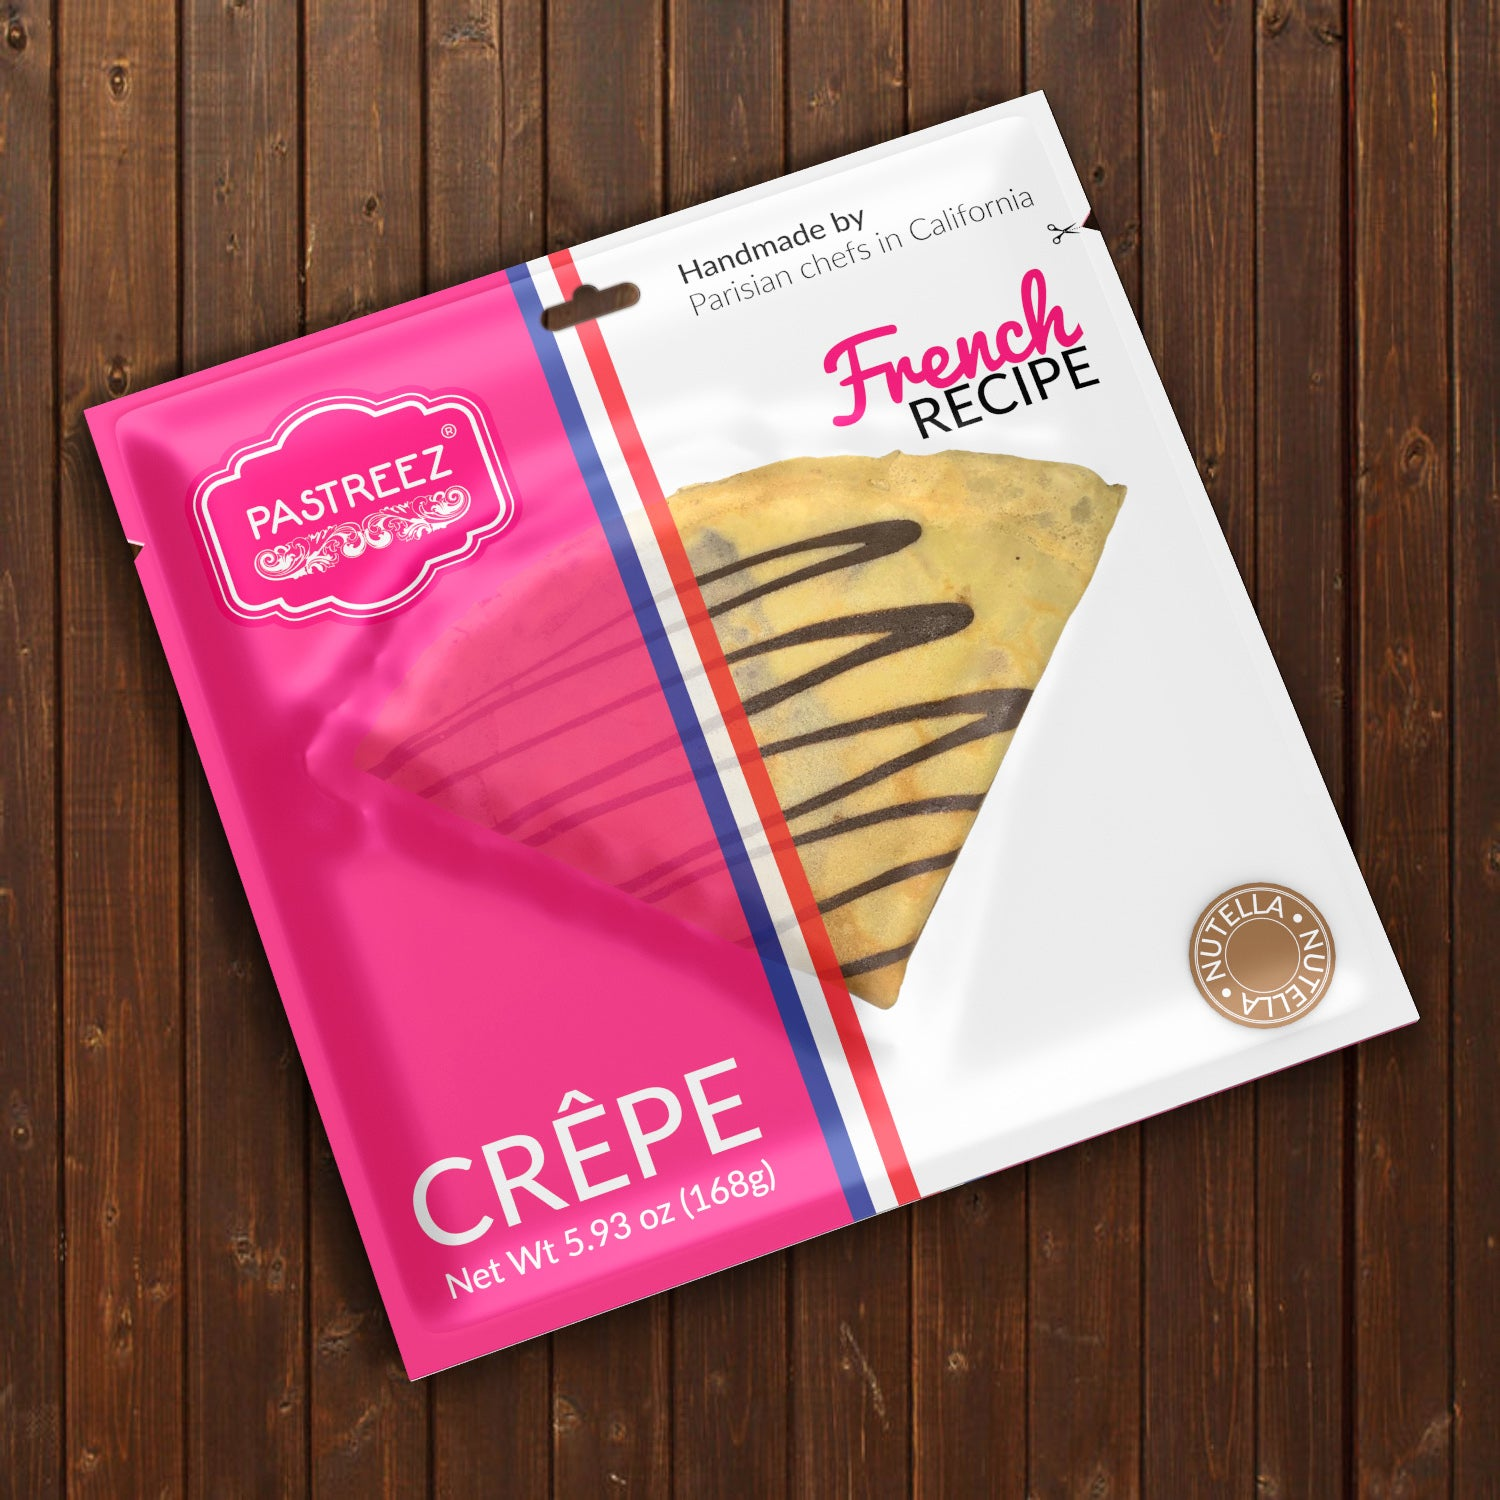 A Nutella flavored crepe by Pastreez.